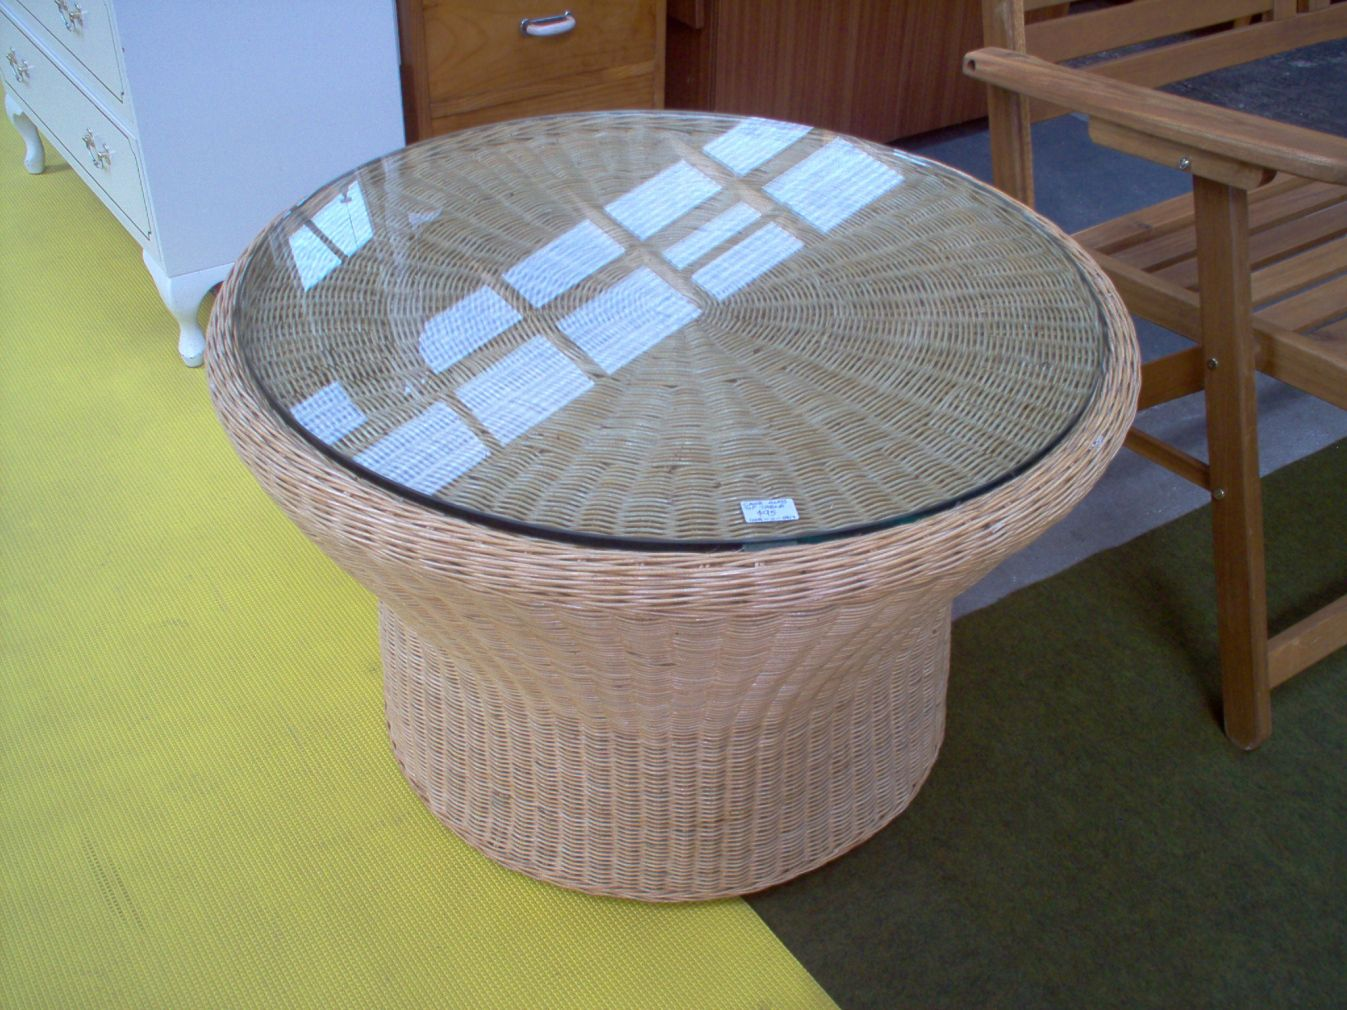 Charmant Cane Coffee Table With Glass Top   Modern Wood Furniture Check More At  Http:/